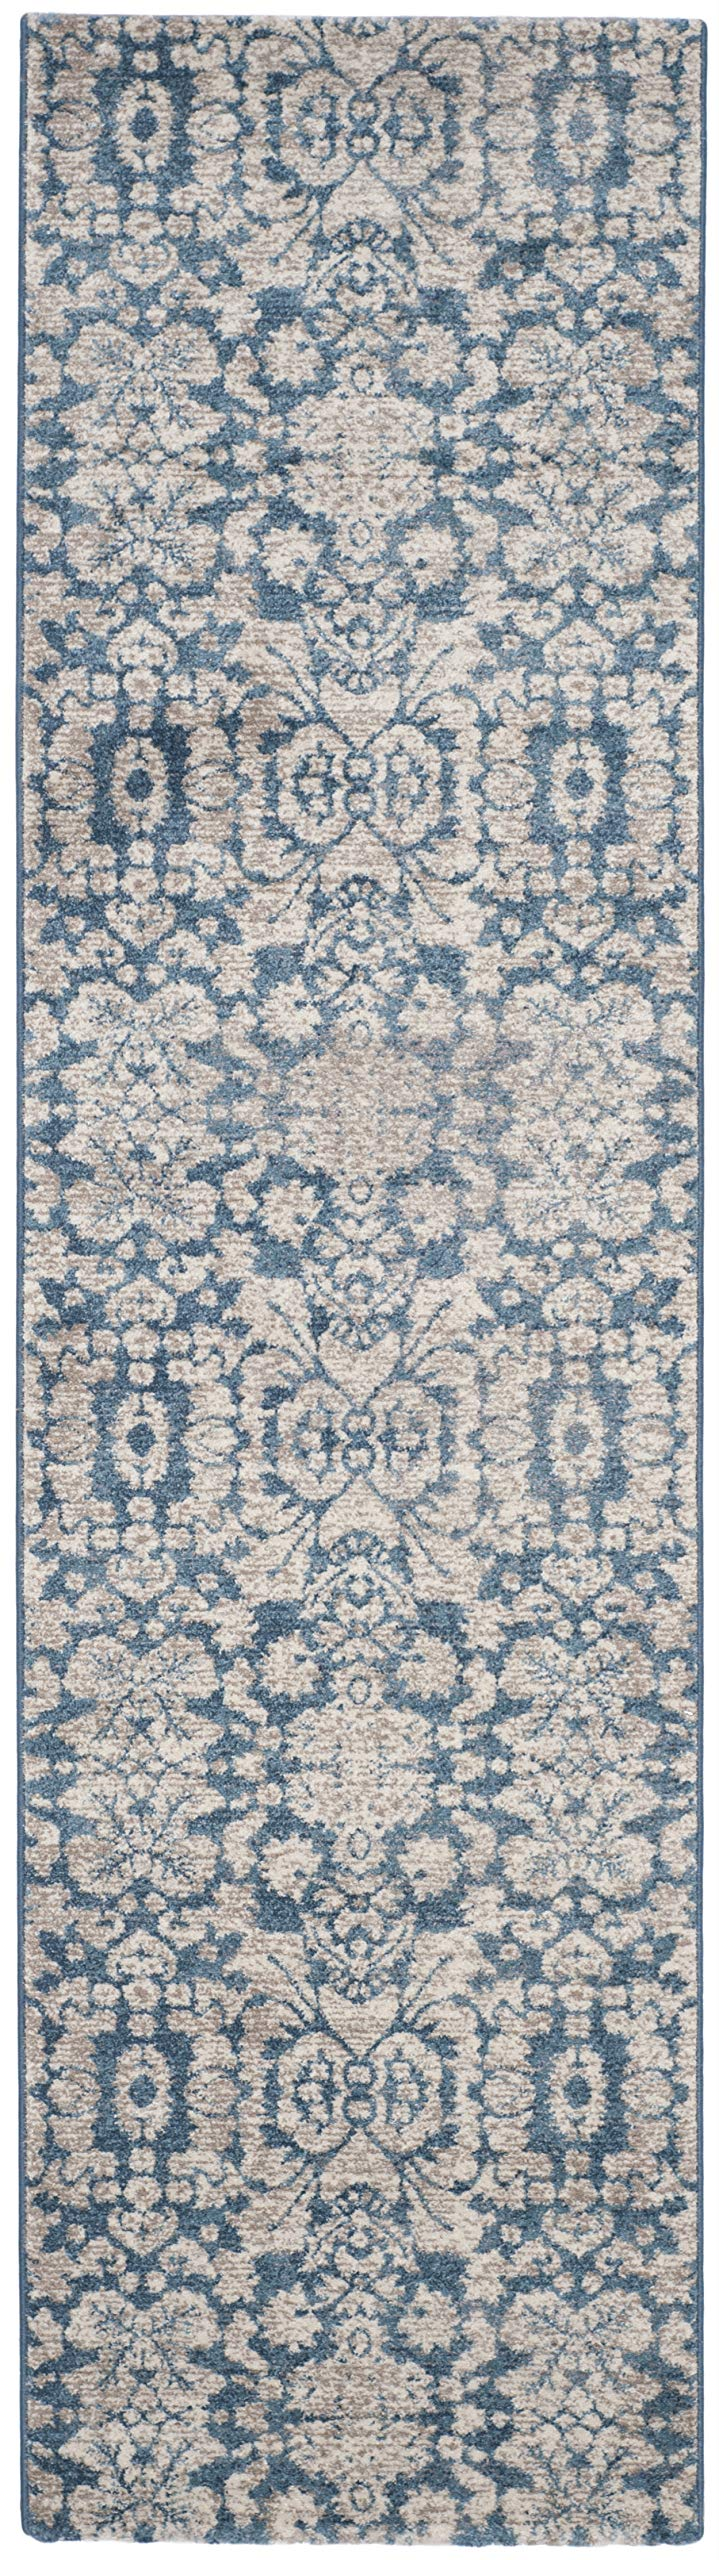 Safavieh Sofia Collection SOF381C Vintage Blue and Beige Distressed Runner (2'2'' x 8')